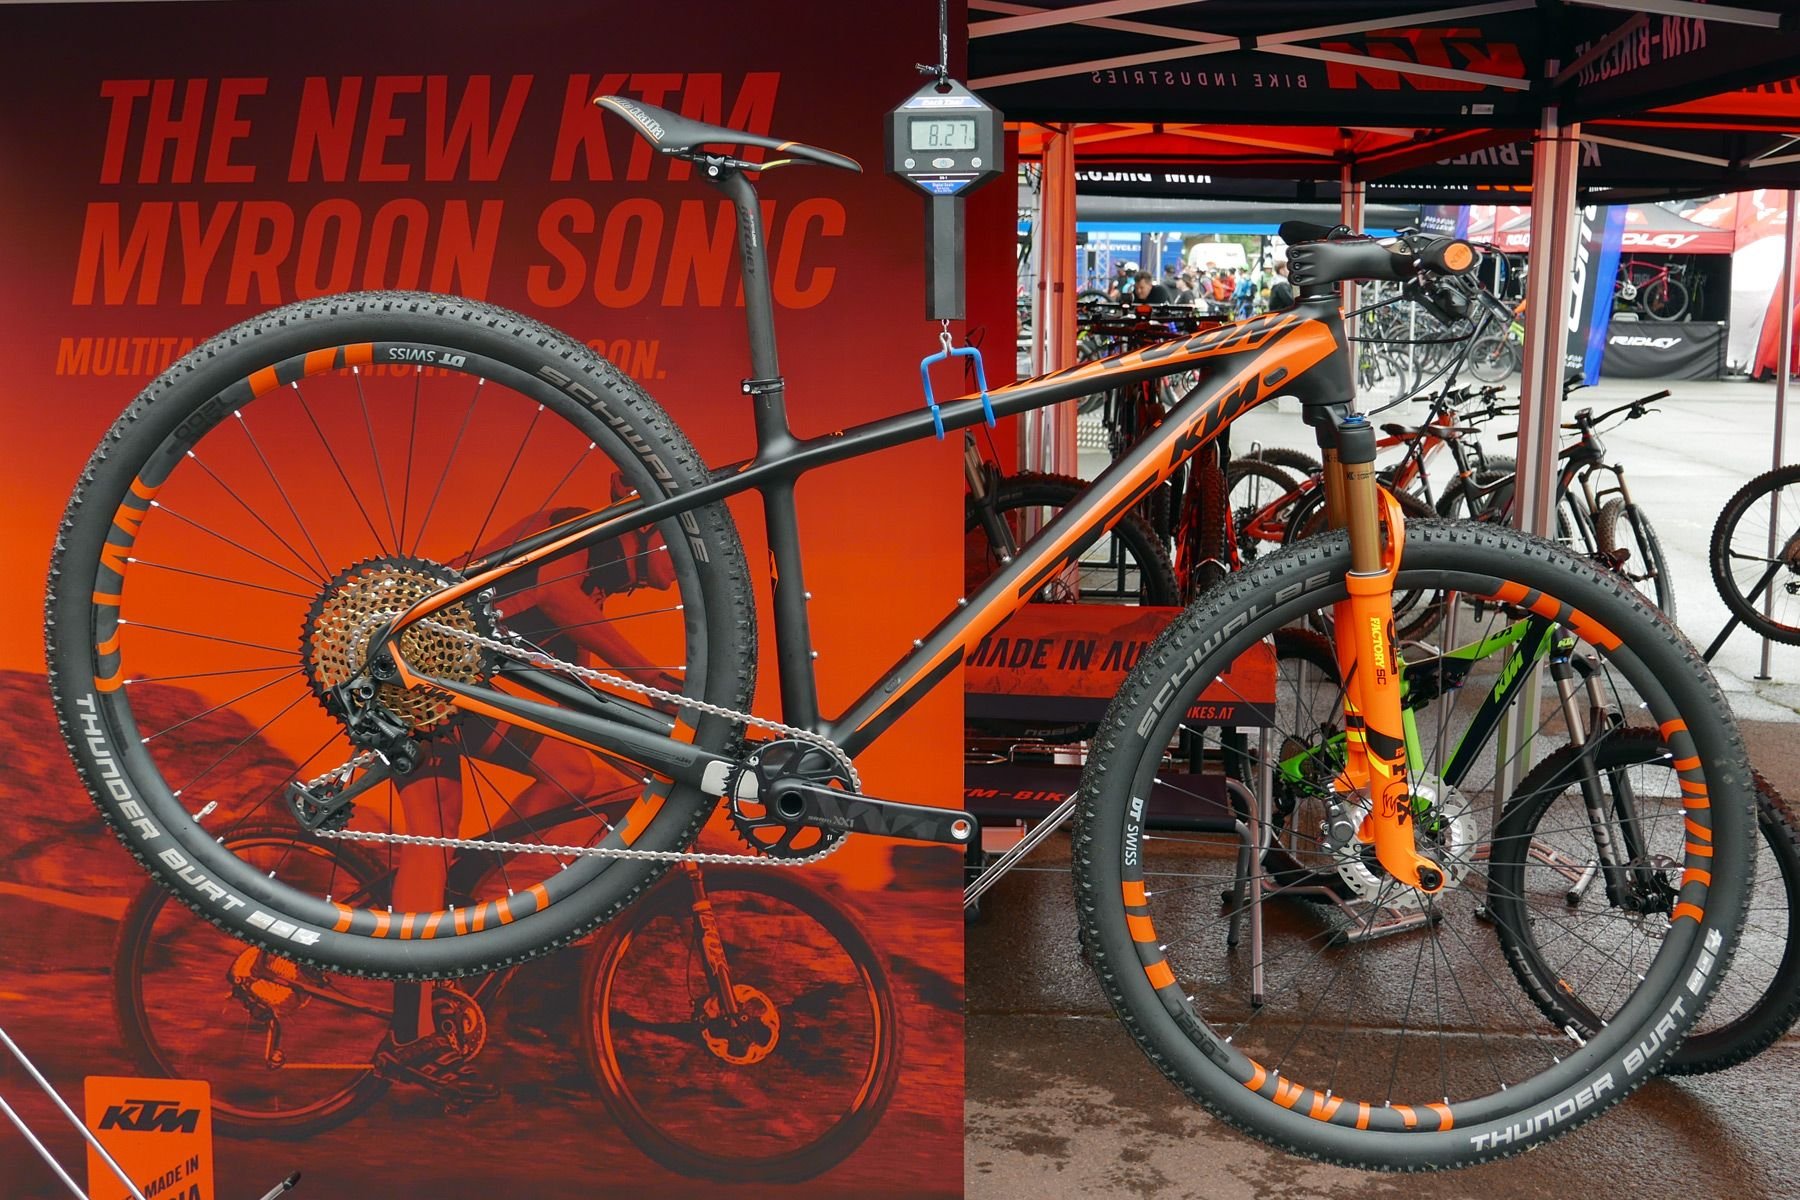 a4f98d80f53 Xc Mountain Bike, Ktm, Cross Country, Hs Sports, Bicycling, Cross Country